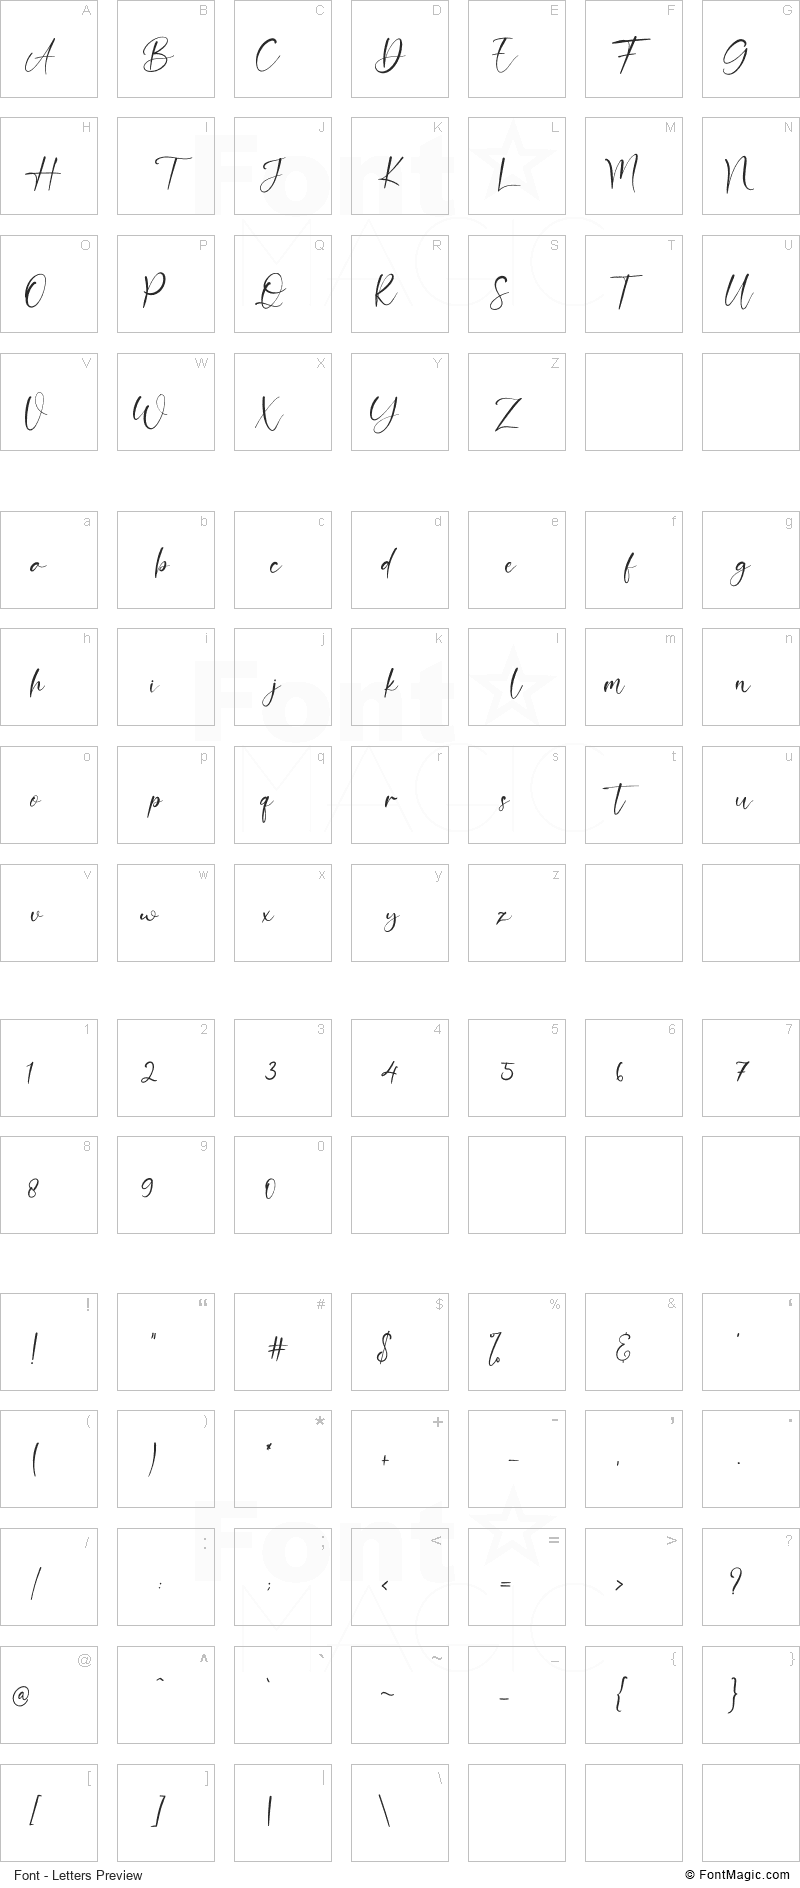 Double Signature Font - All Latters Preview Chart